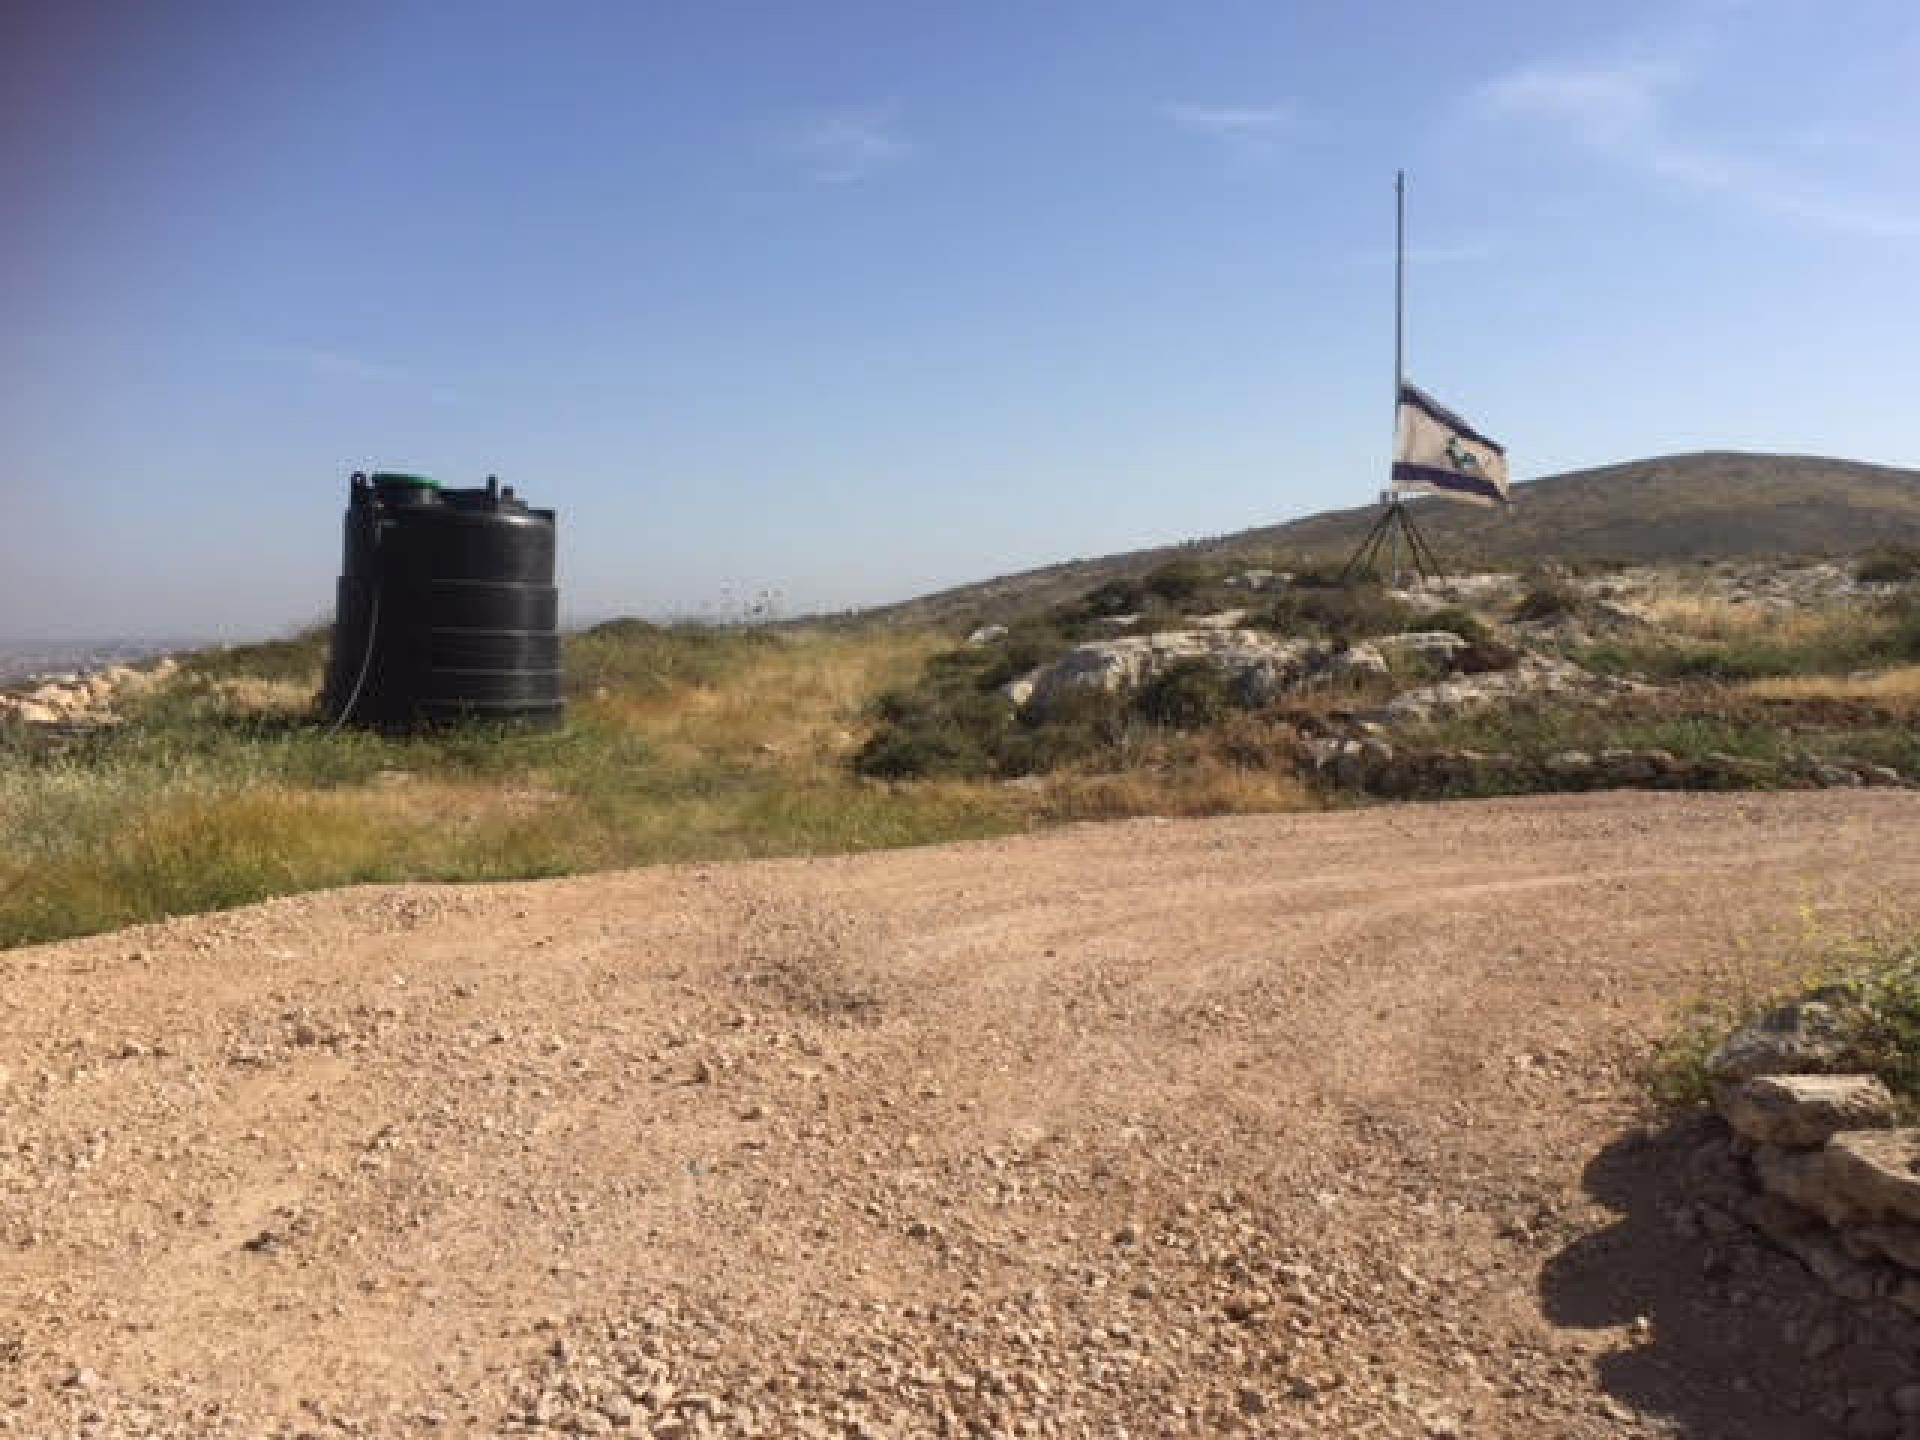 The flag and water tank on another hill, closer to the main road and to the settler-colony